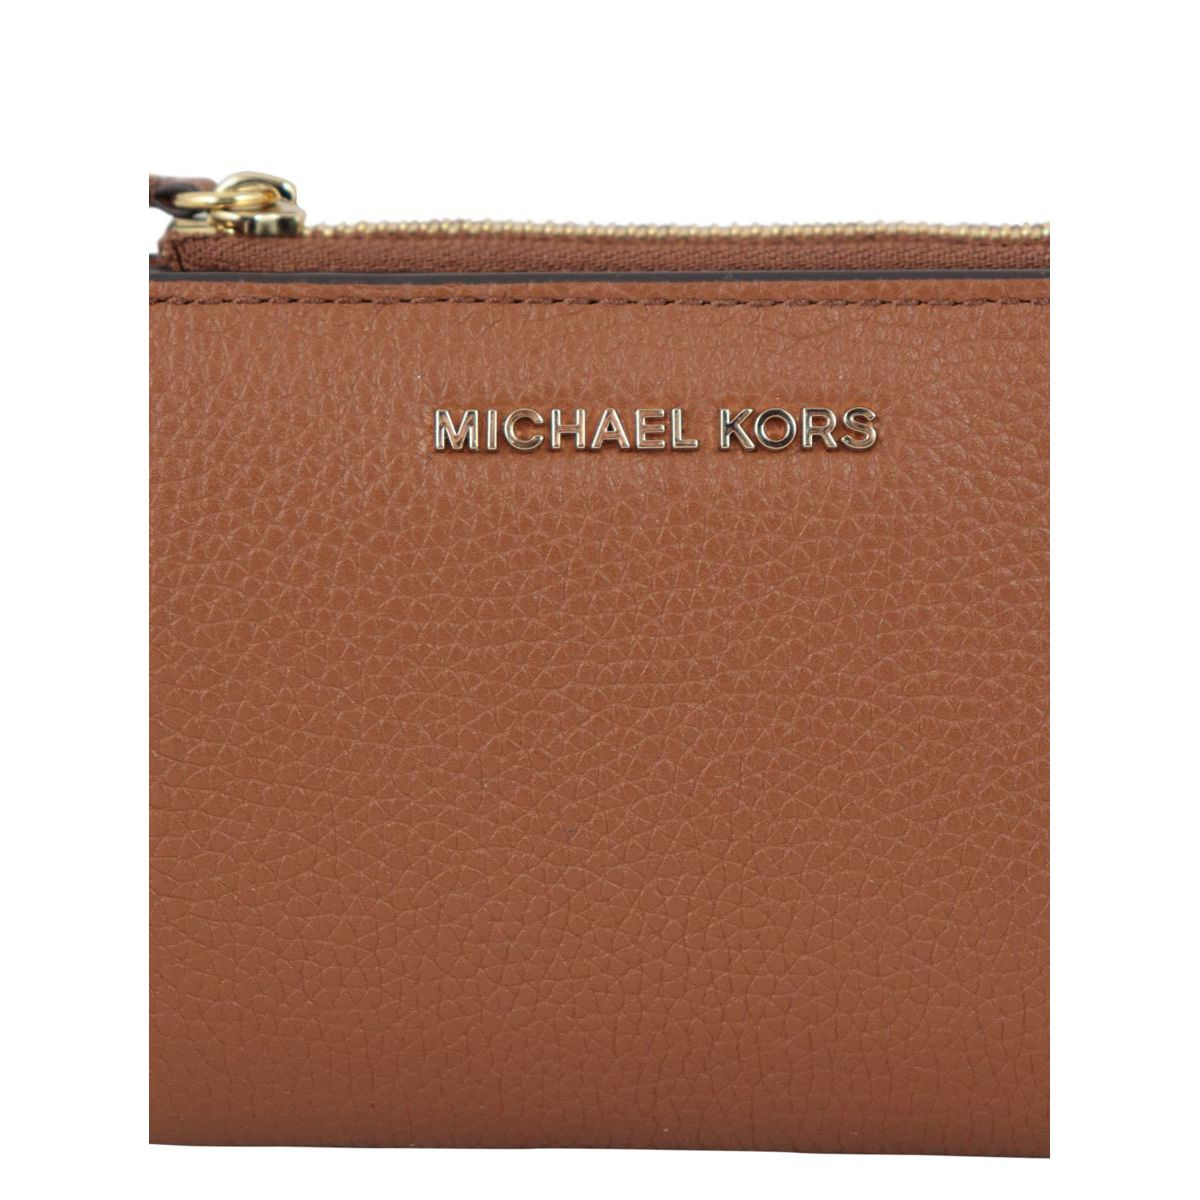 Textured leather wallet with external zipper Leather Michael Kors